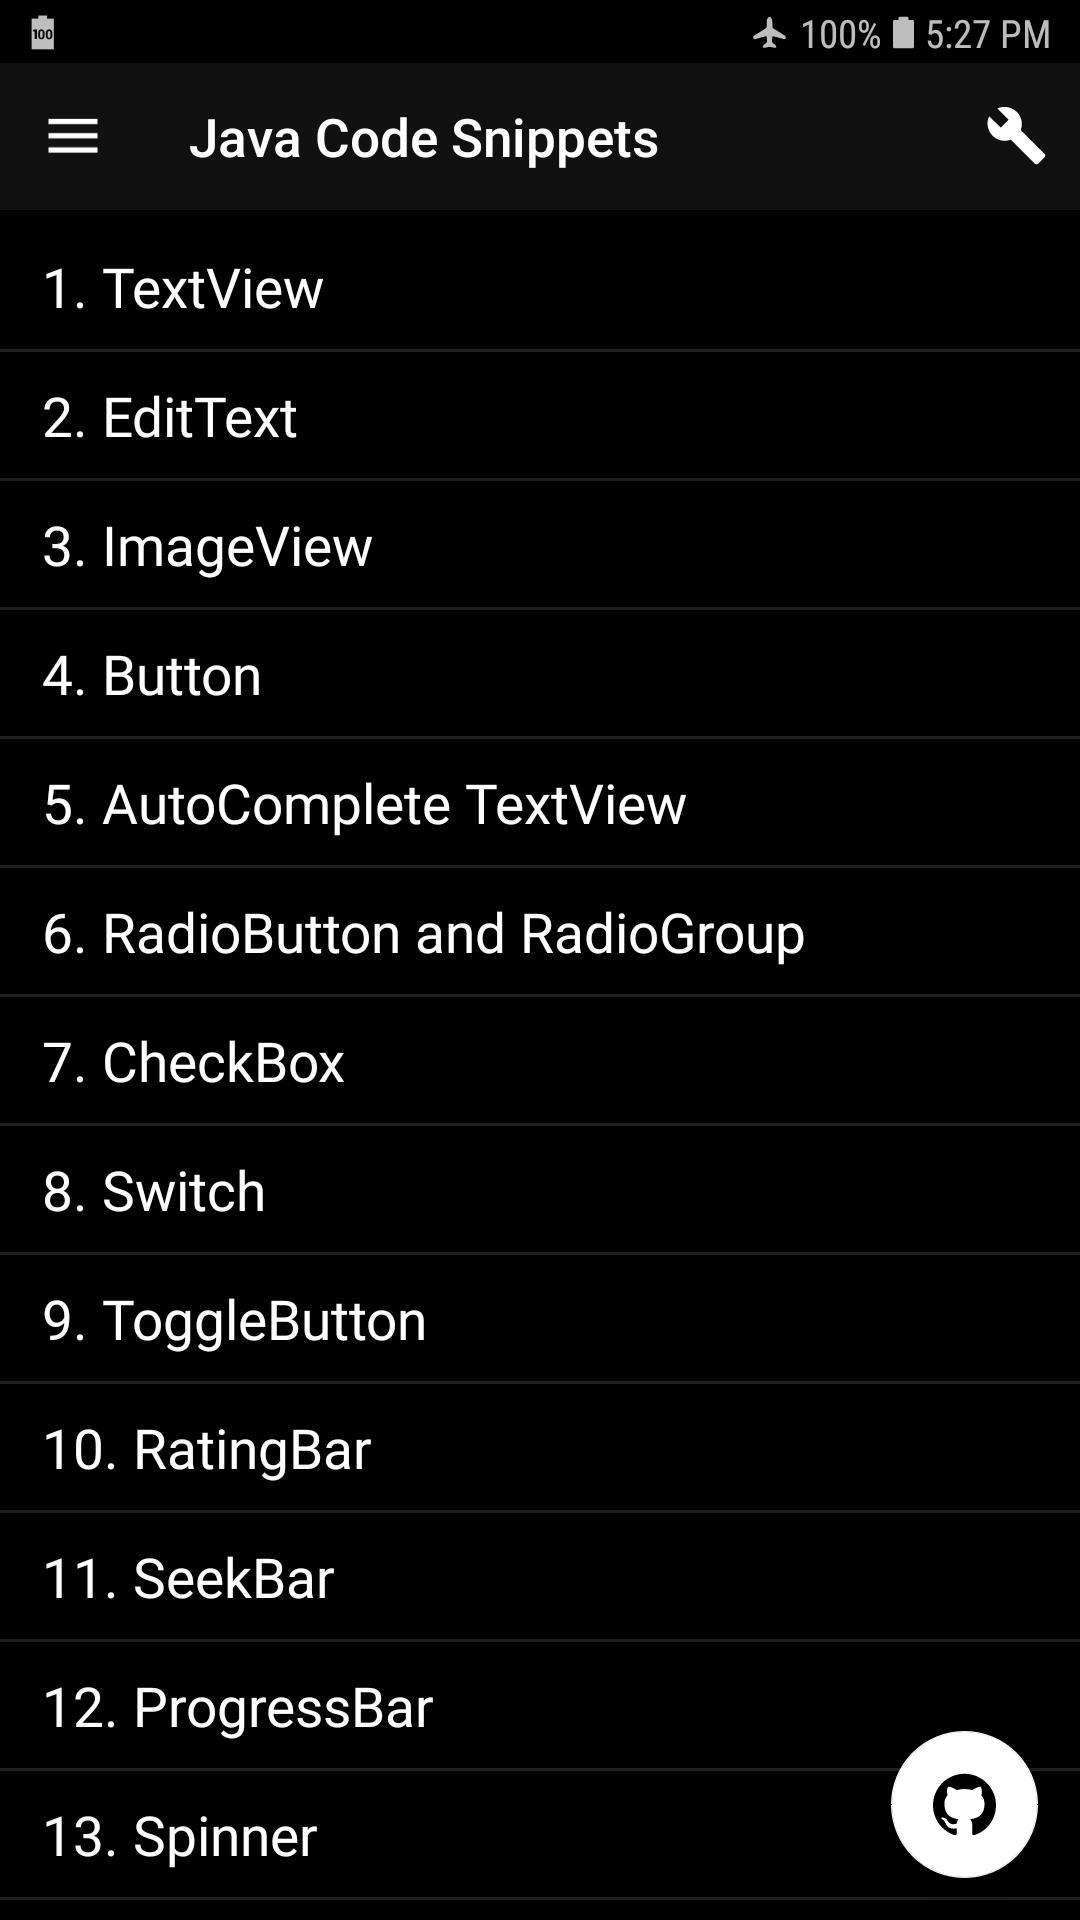 Java Code Snippets for Android - APK Download